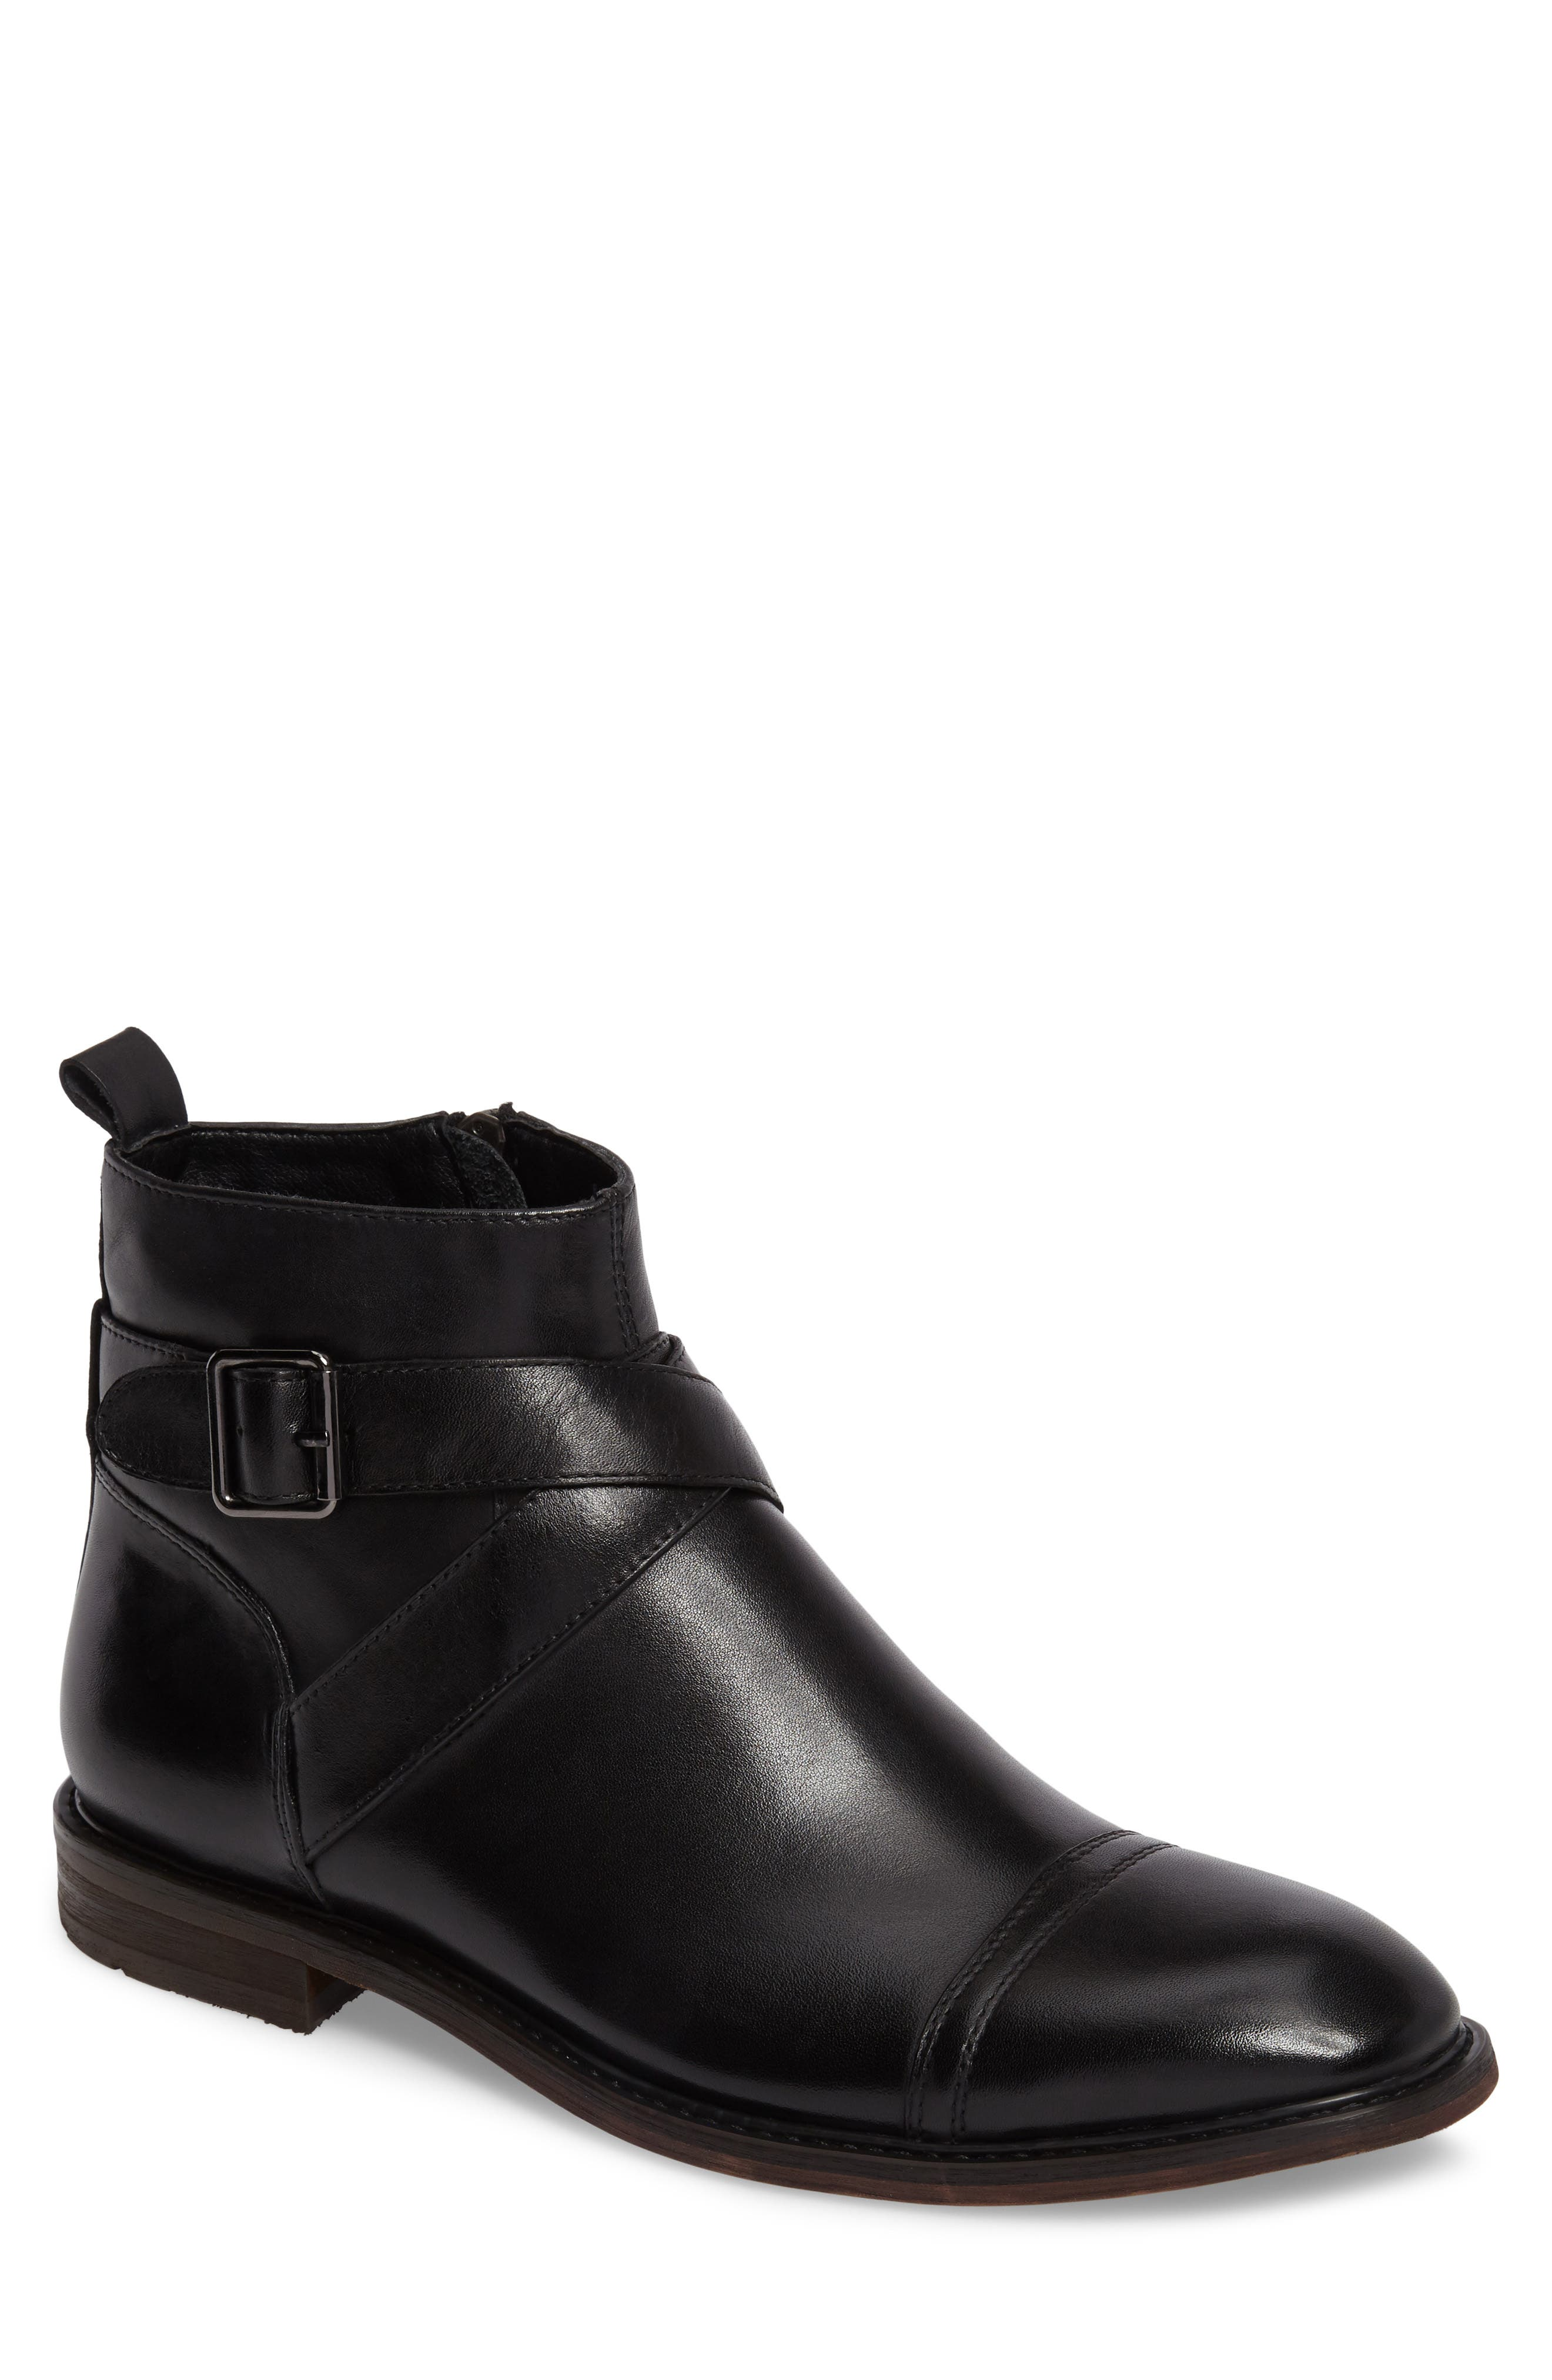 Edmond Zip Boot,                             Main thumbnail 1, color,                             Black Leather